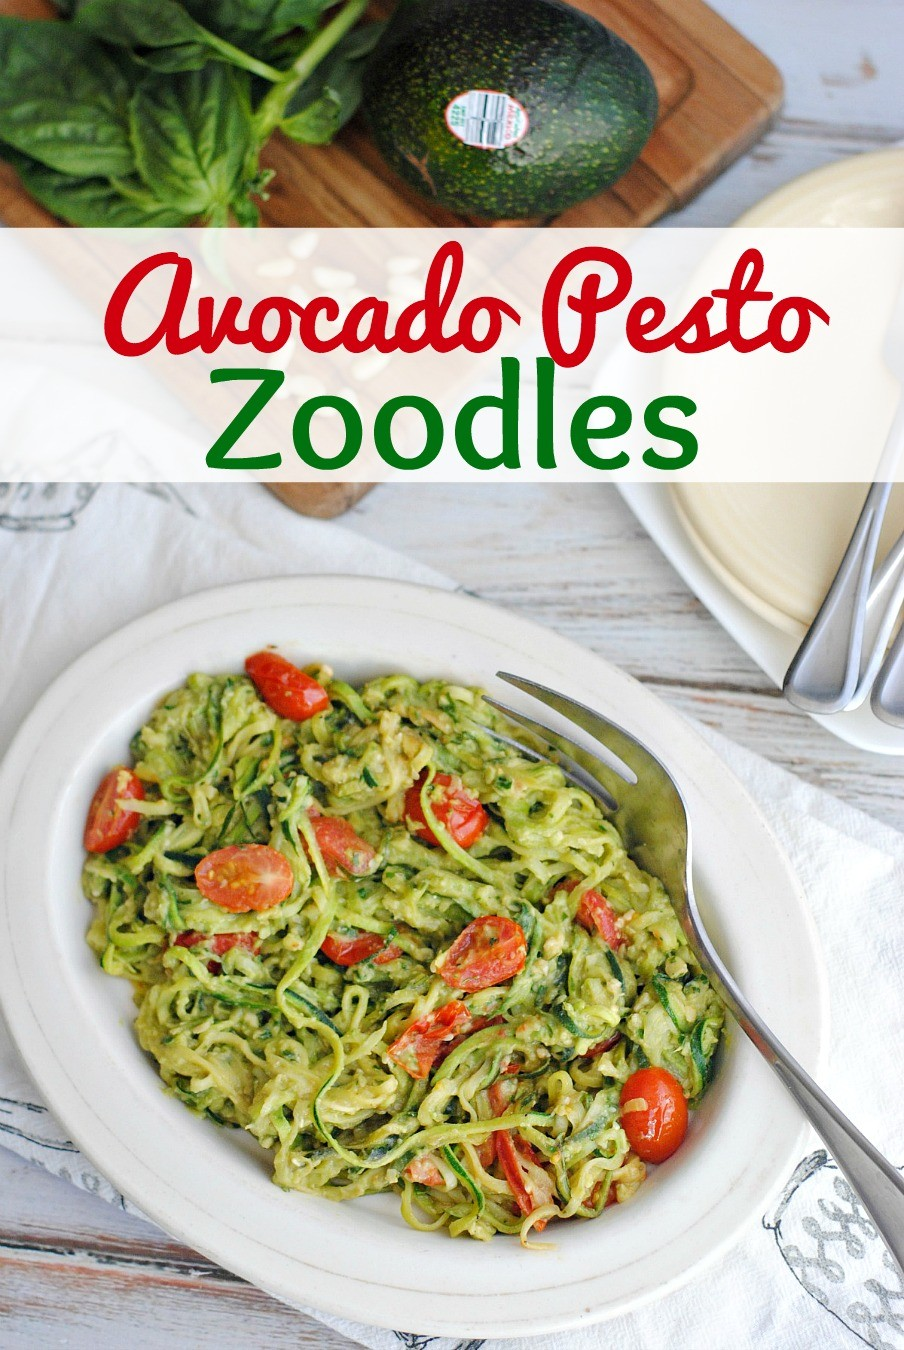 Avocado Pesto Zoodles Recipe- This Mama Loves